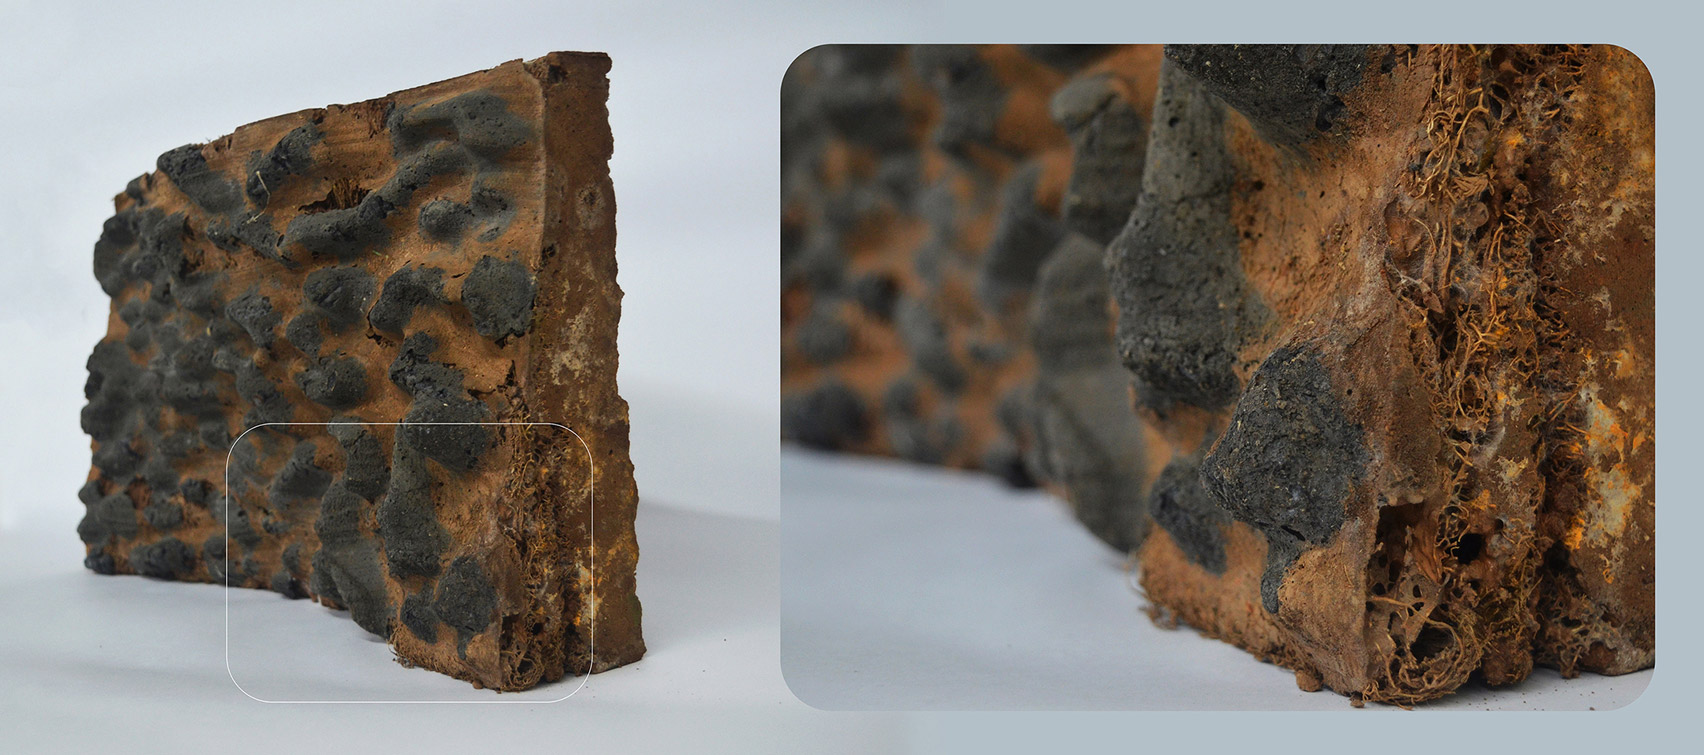 Green Charcoal bio-brick by Indian School of Design and Innovation Mumbai